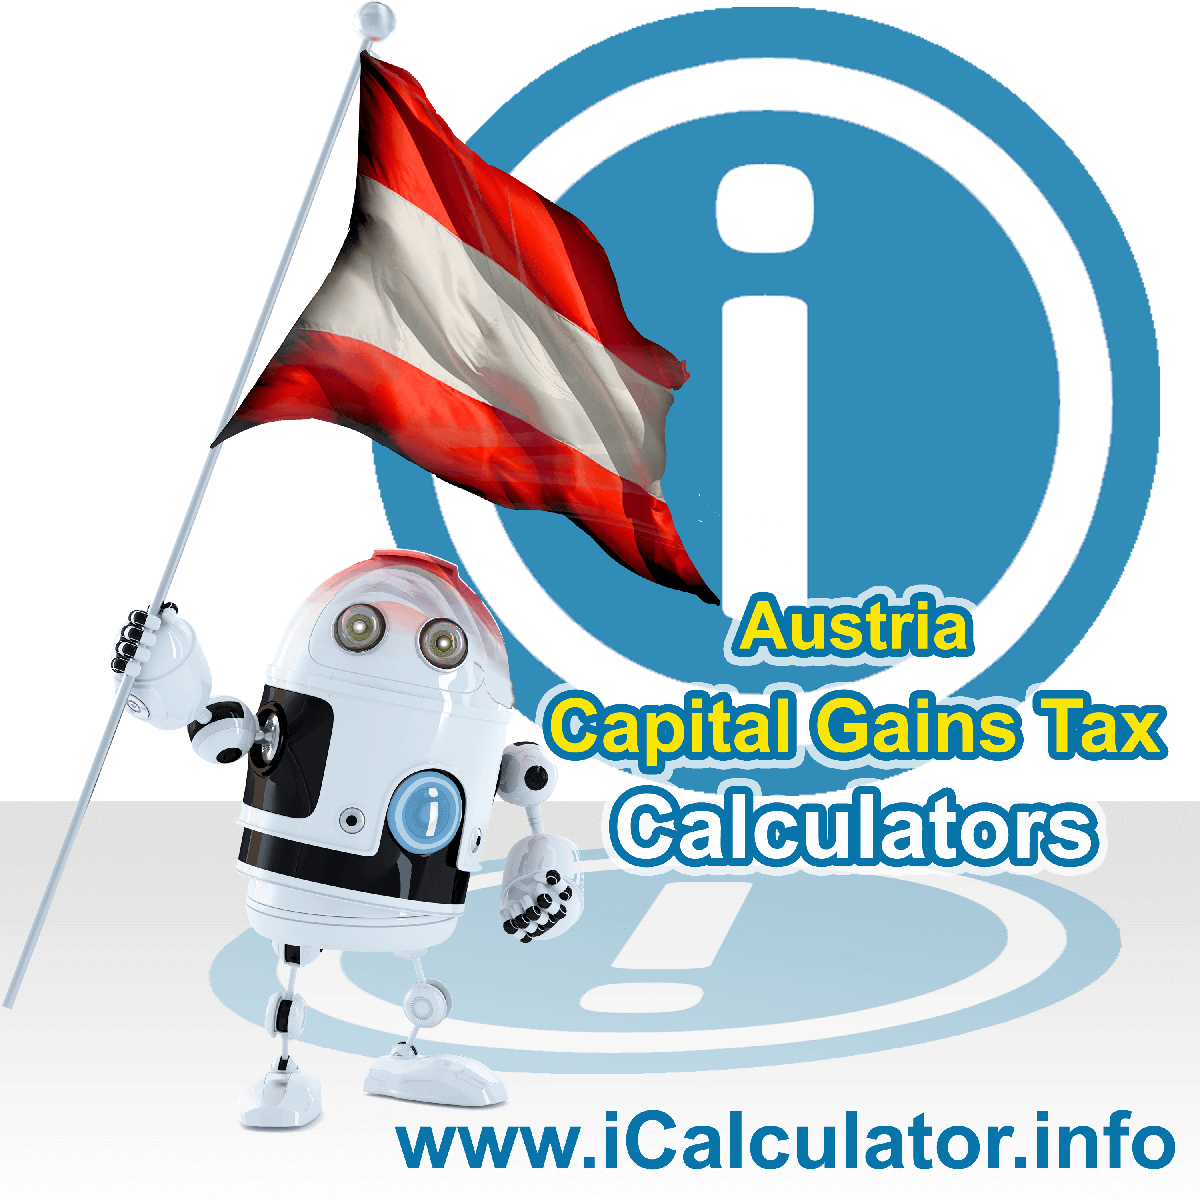 Austria Capital Gains Tax Calculator. This image shows the Austria flag and information relating to the capital gains tax rate formula used for calculating Capital Gains Tax in Austria using the Austria Capital Gains Tax Calculator in 2020